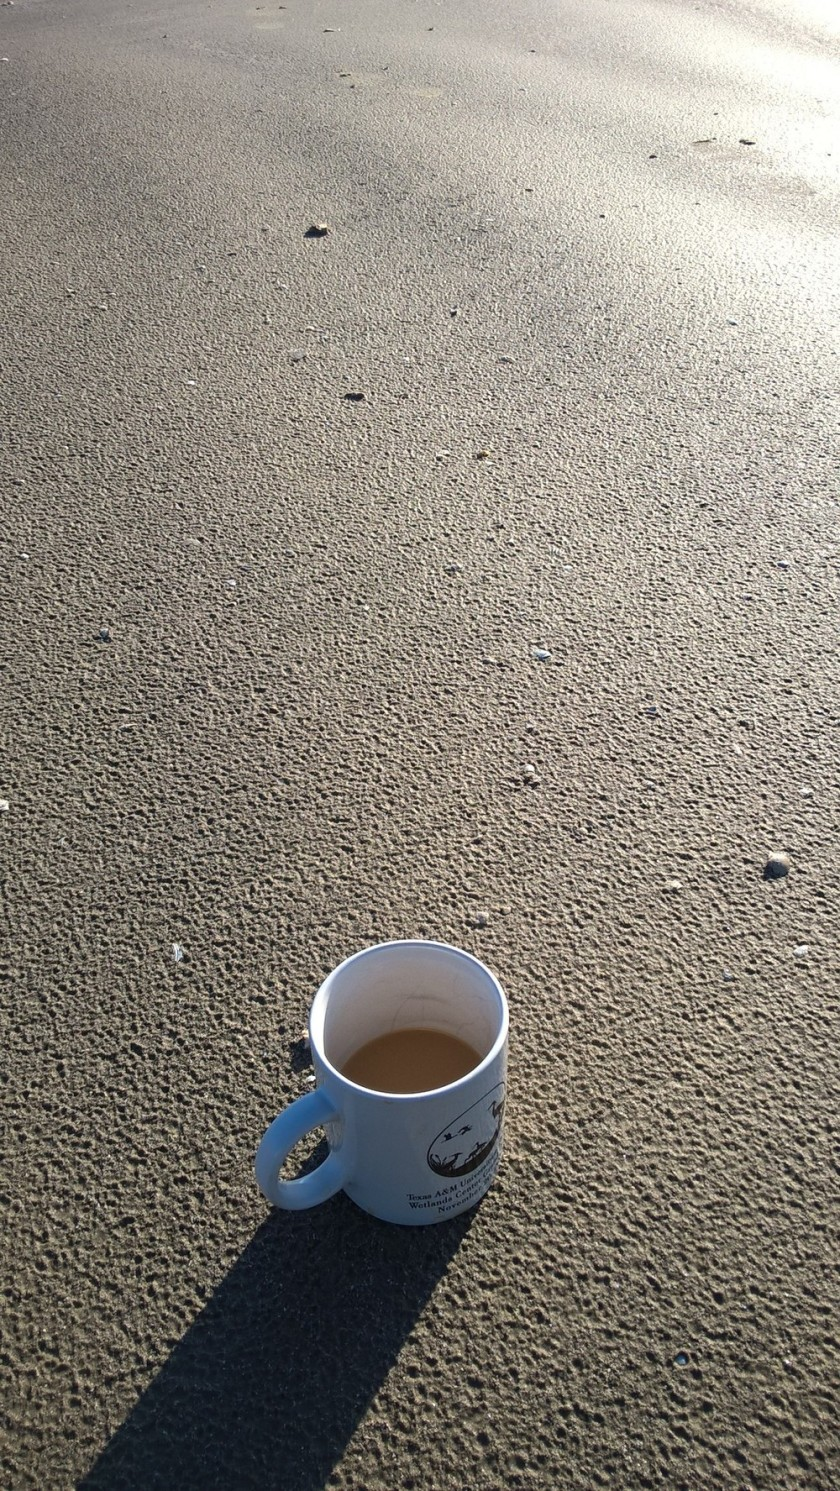 While drinking coffee on the beach!